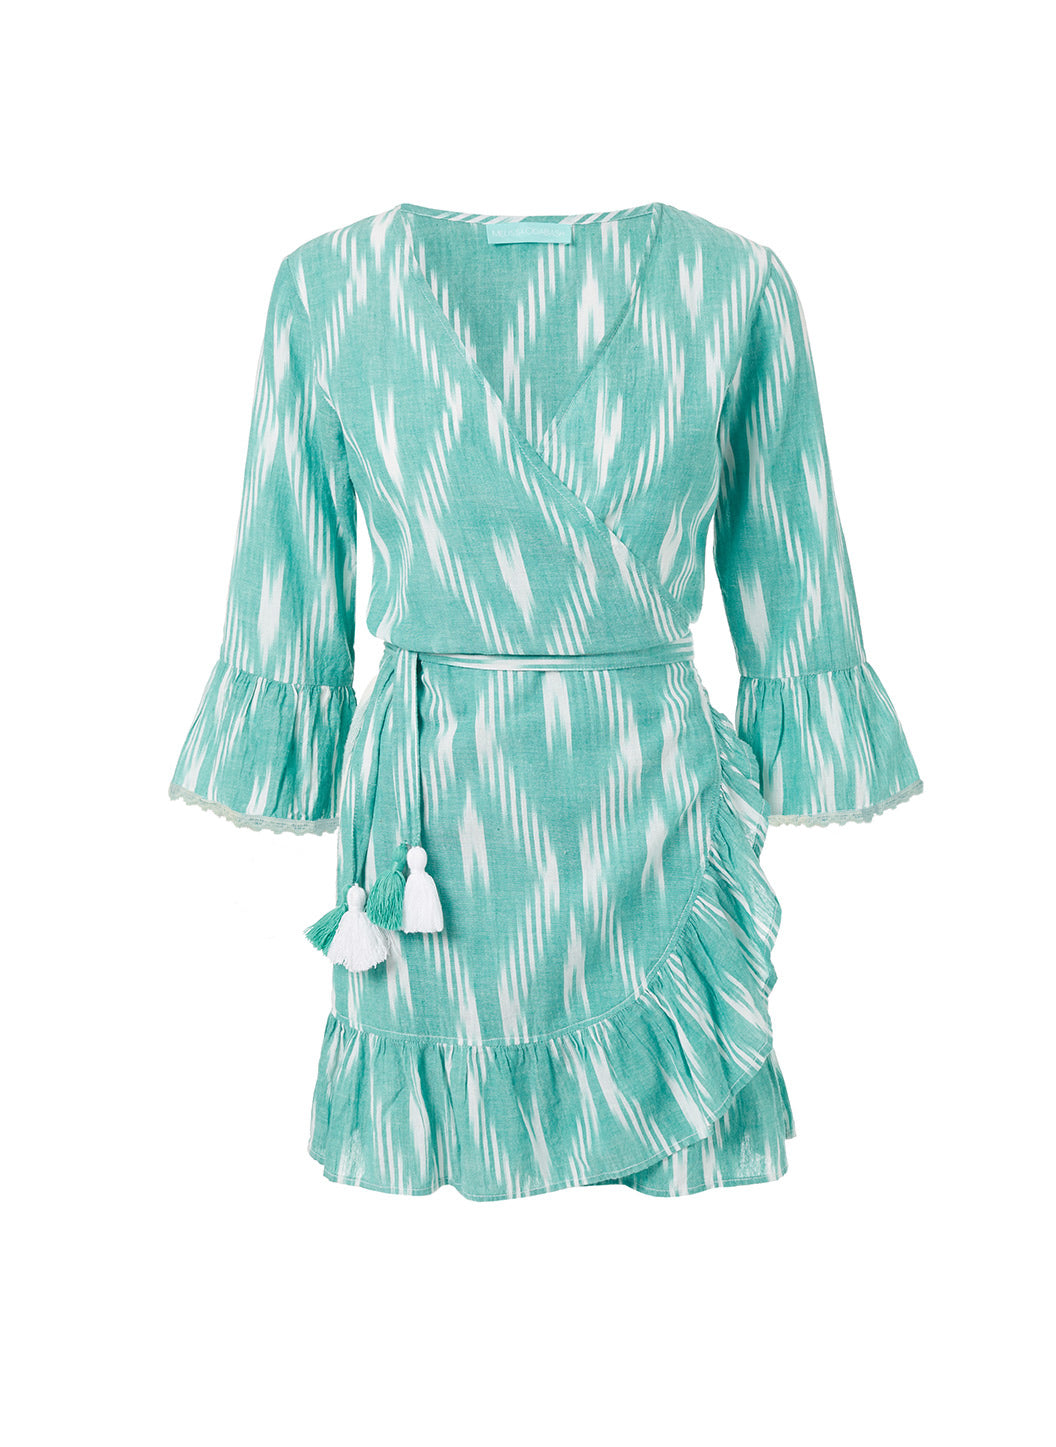 Freya Greenikat Short Belted Wrap Dress - Melissa Odabash Beachwear